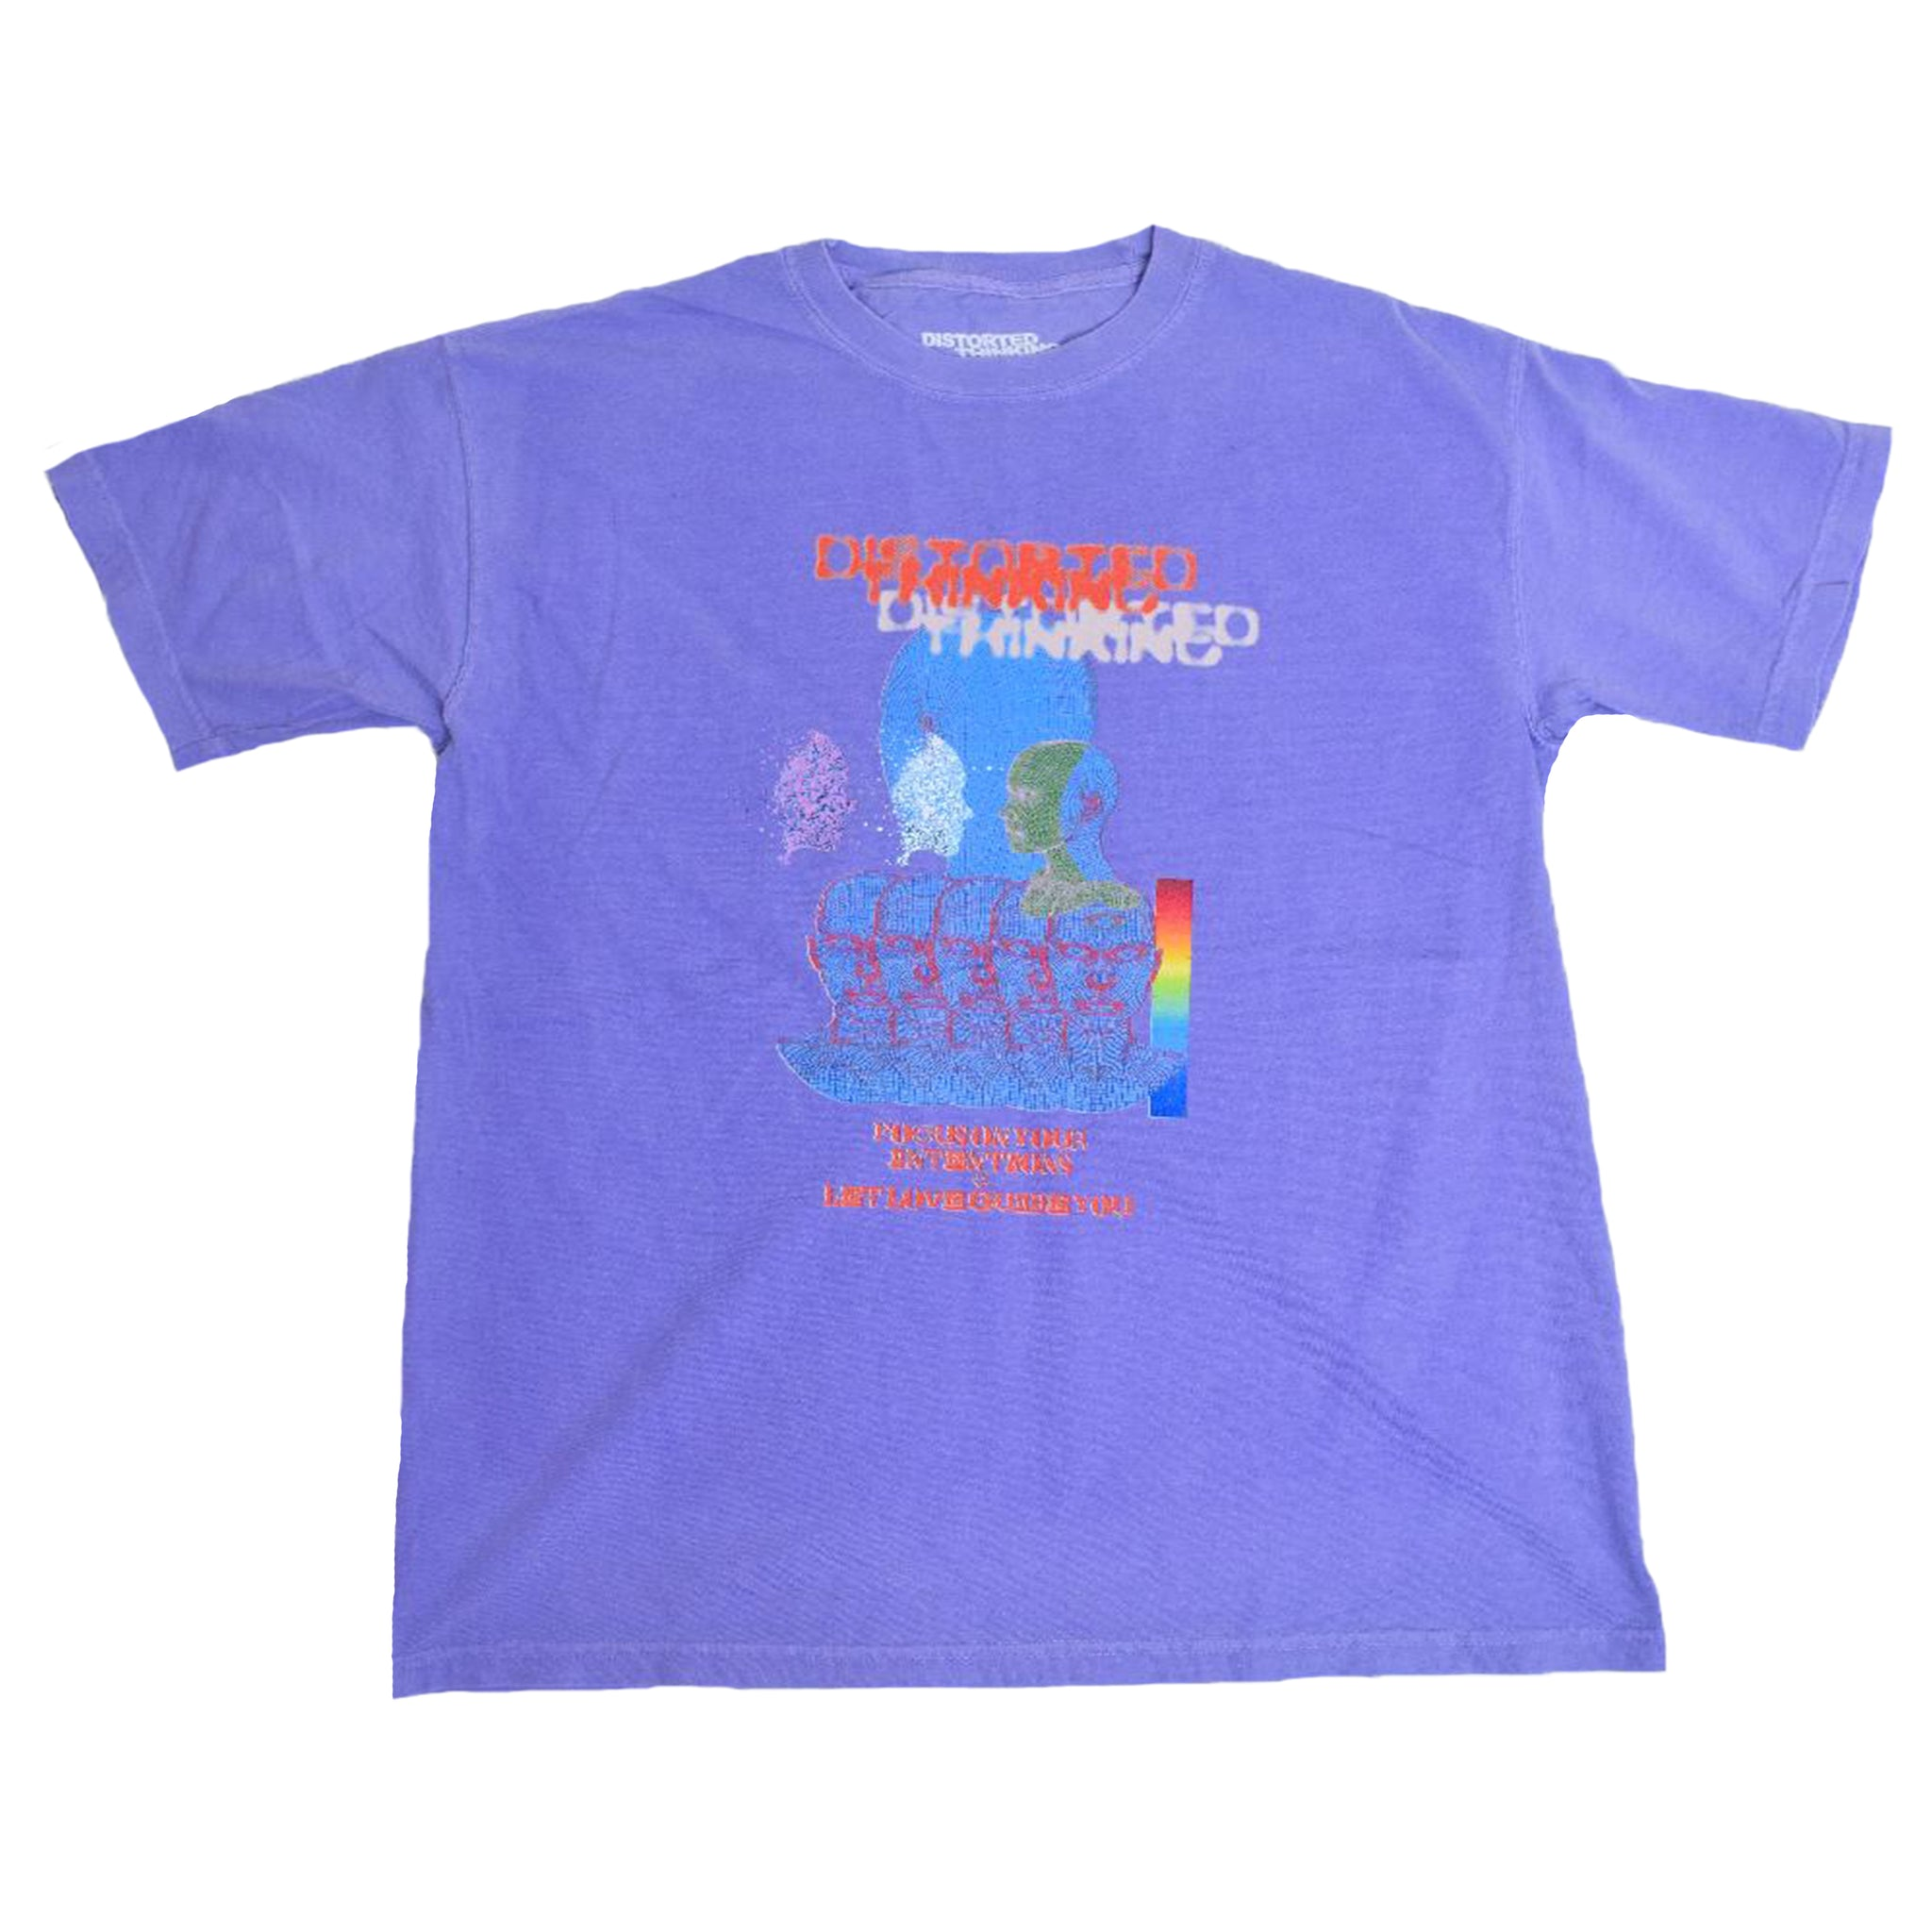 Intentions T-Shirt - Purple